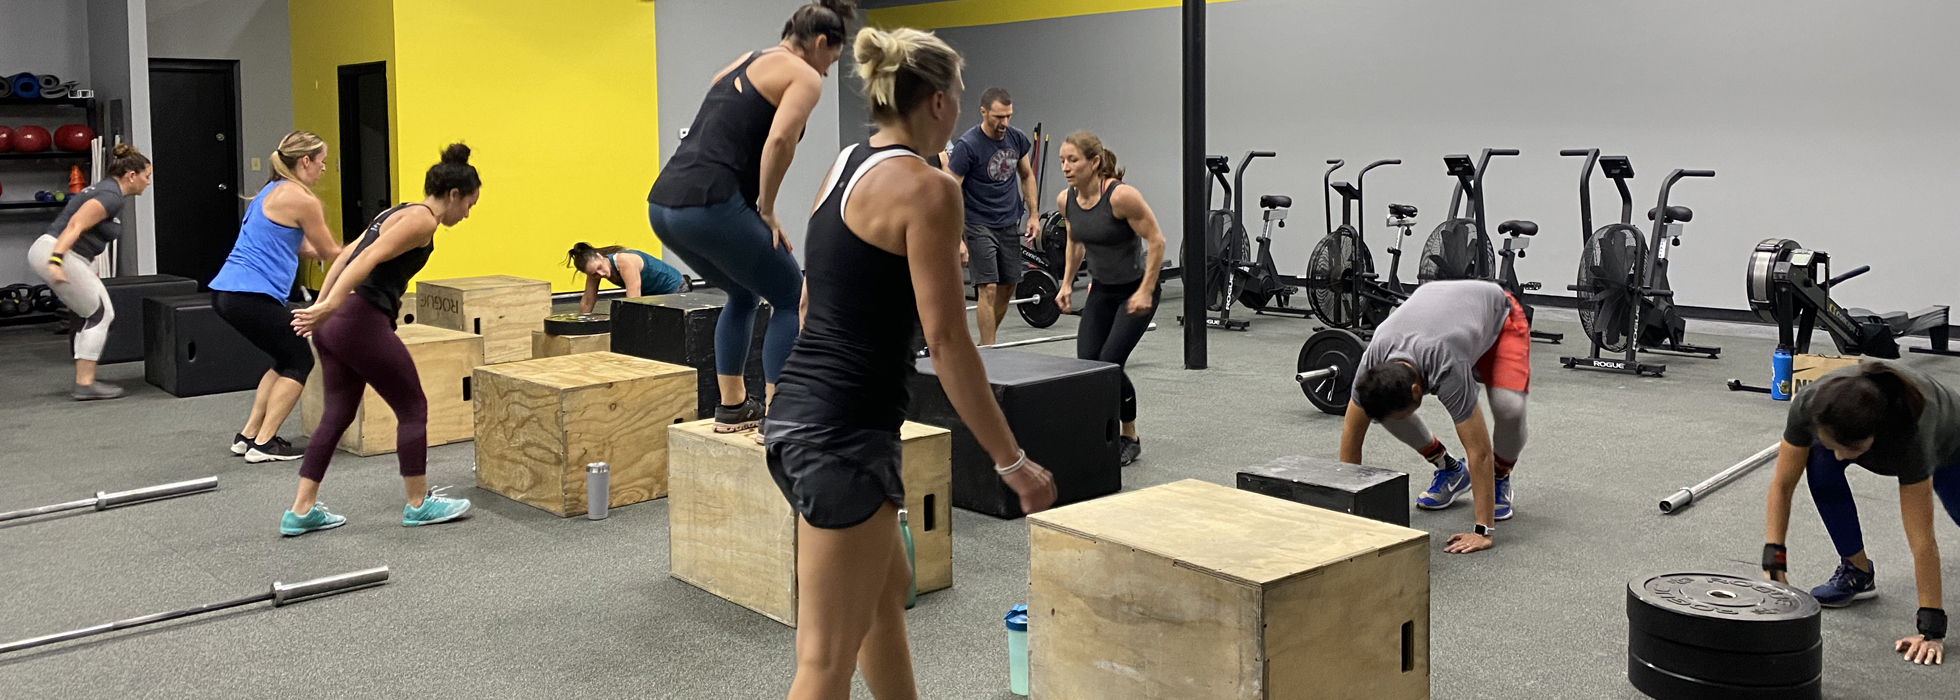 Top 5 Best Gyms To Join Near Tucson AZ